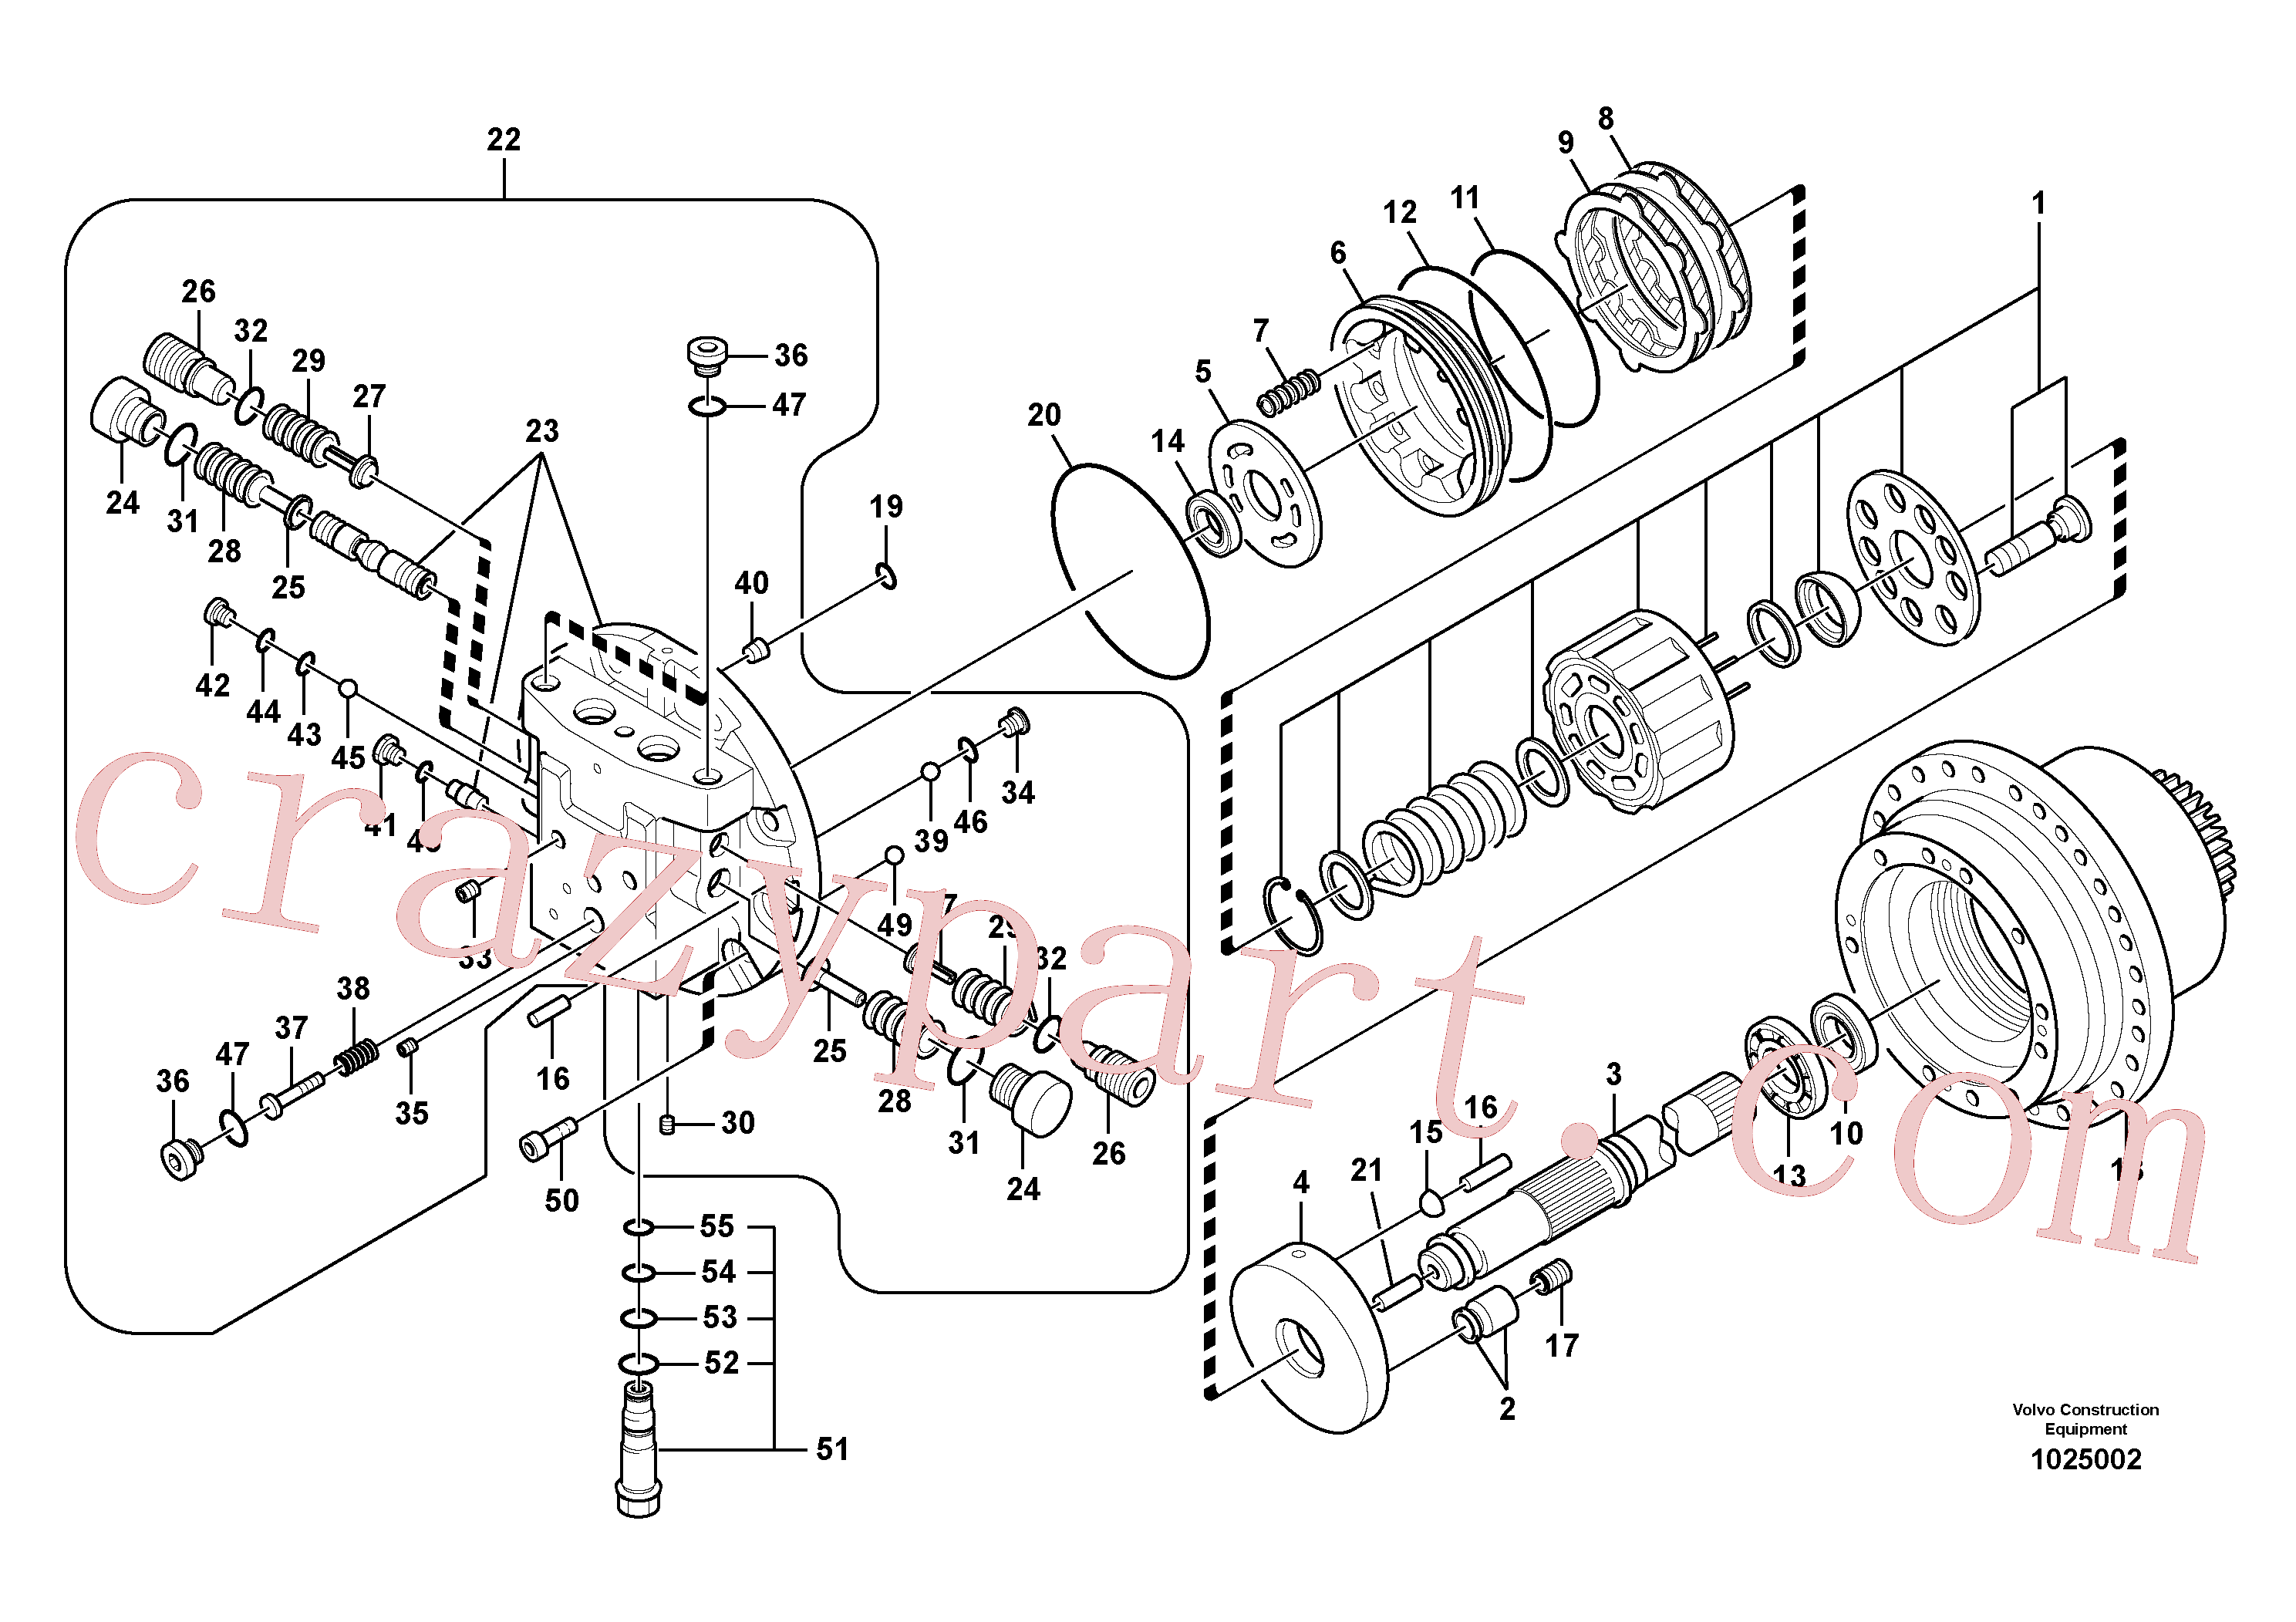 SA8230-08630 for Volvo Travel motor(1025002 assembly)